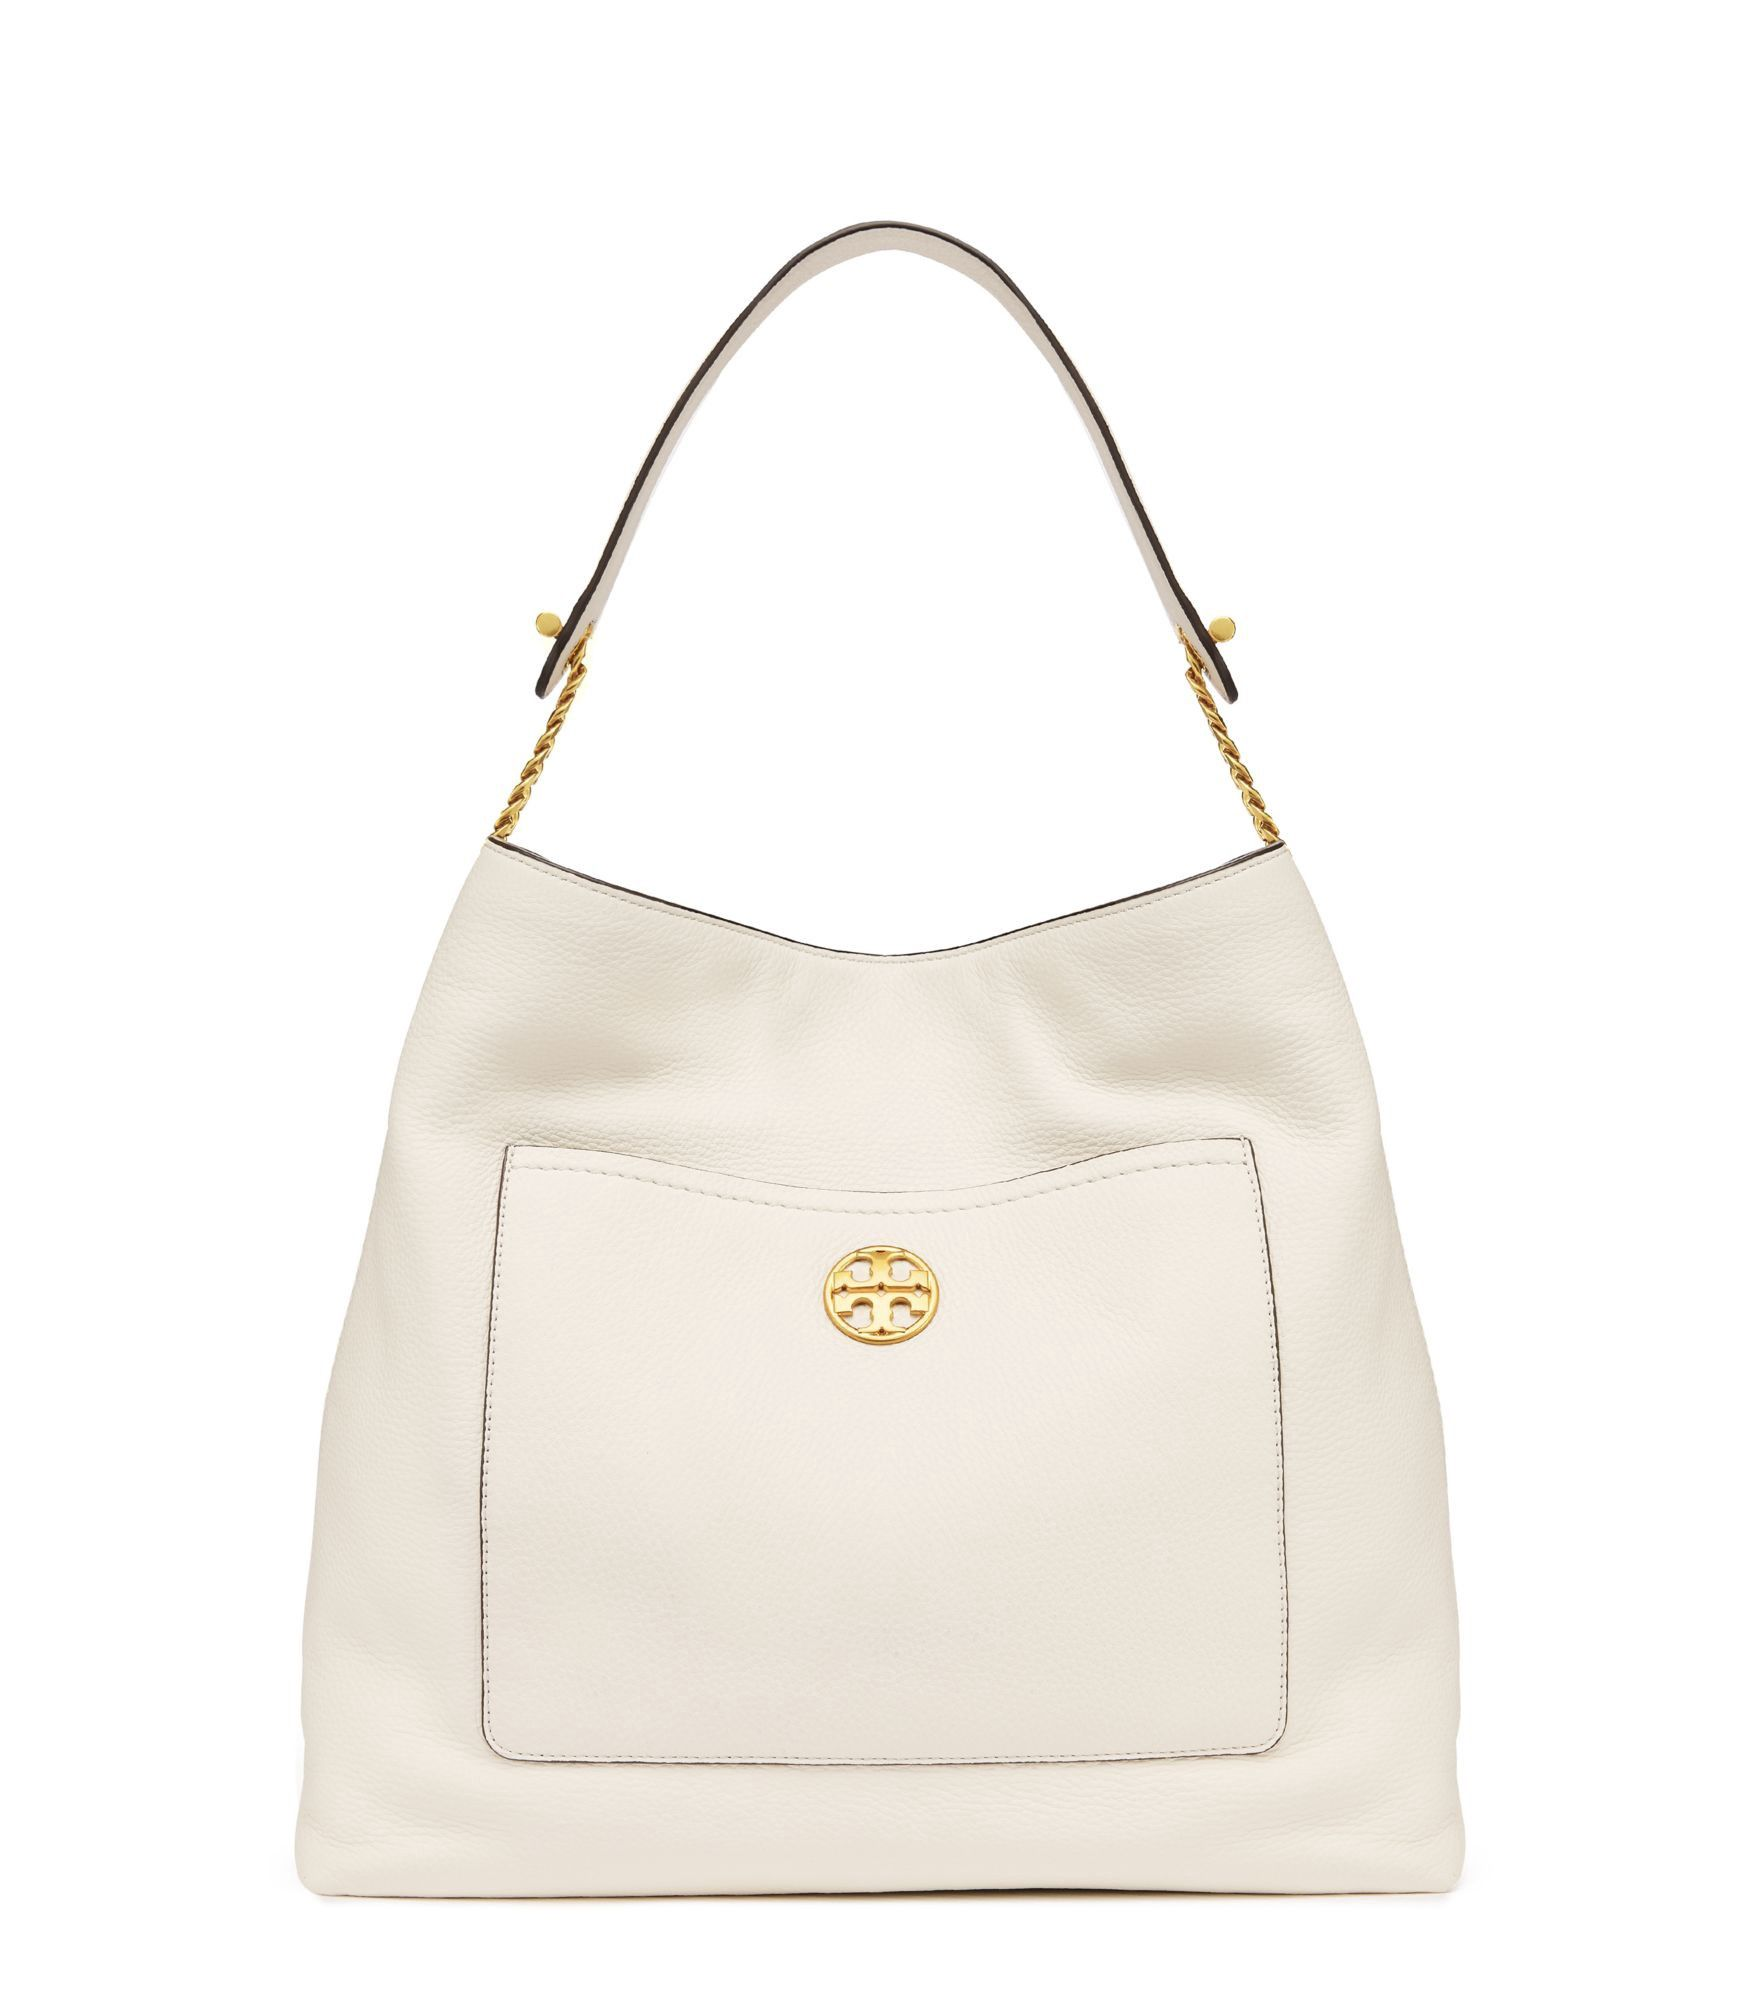 80a3261e13cd TORY BURCH CHELSEA CHAIN HOBO.  toryburch  bags  shoulder bags  leather   hobo